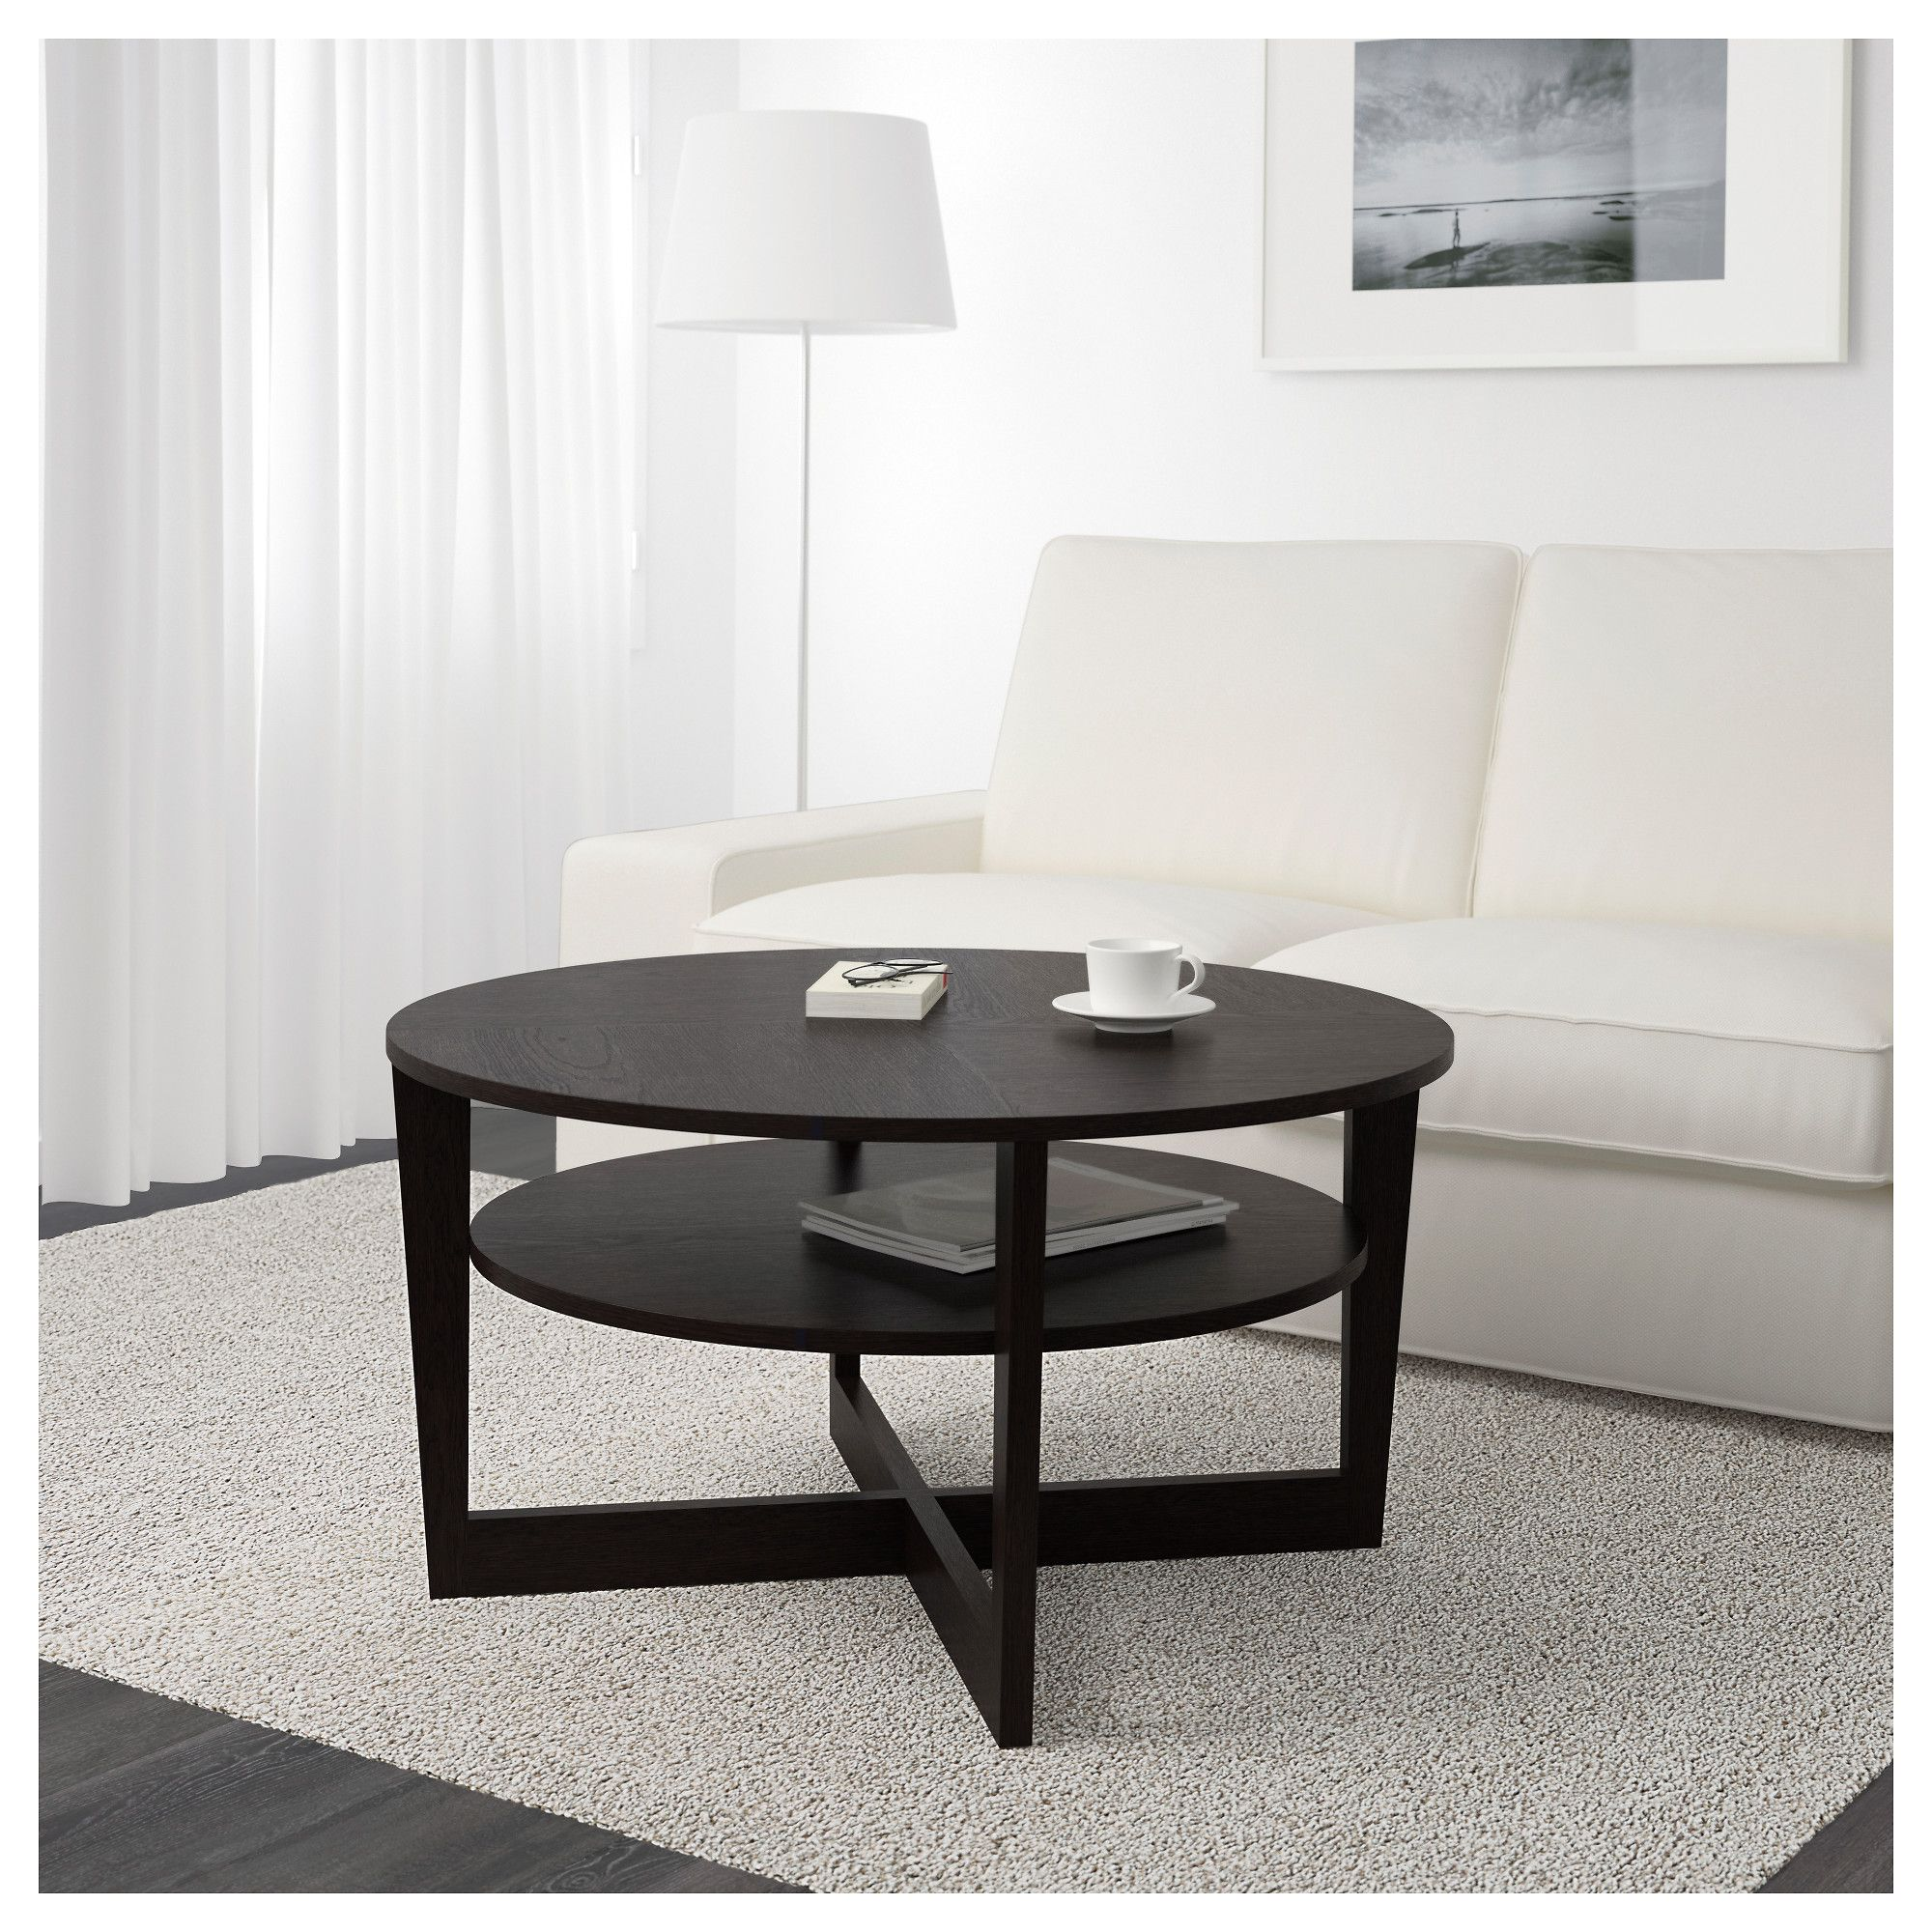 Ikea Malmsta Couchtisch Ikea Vejmon Coffee Table Black Brown My Home Decor Pinterest